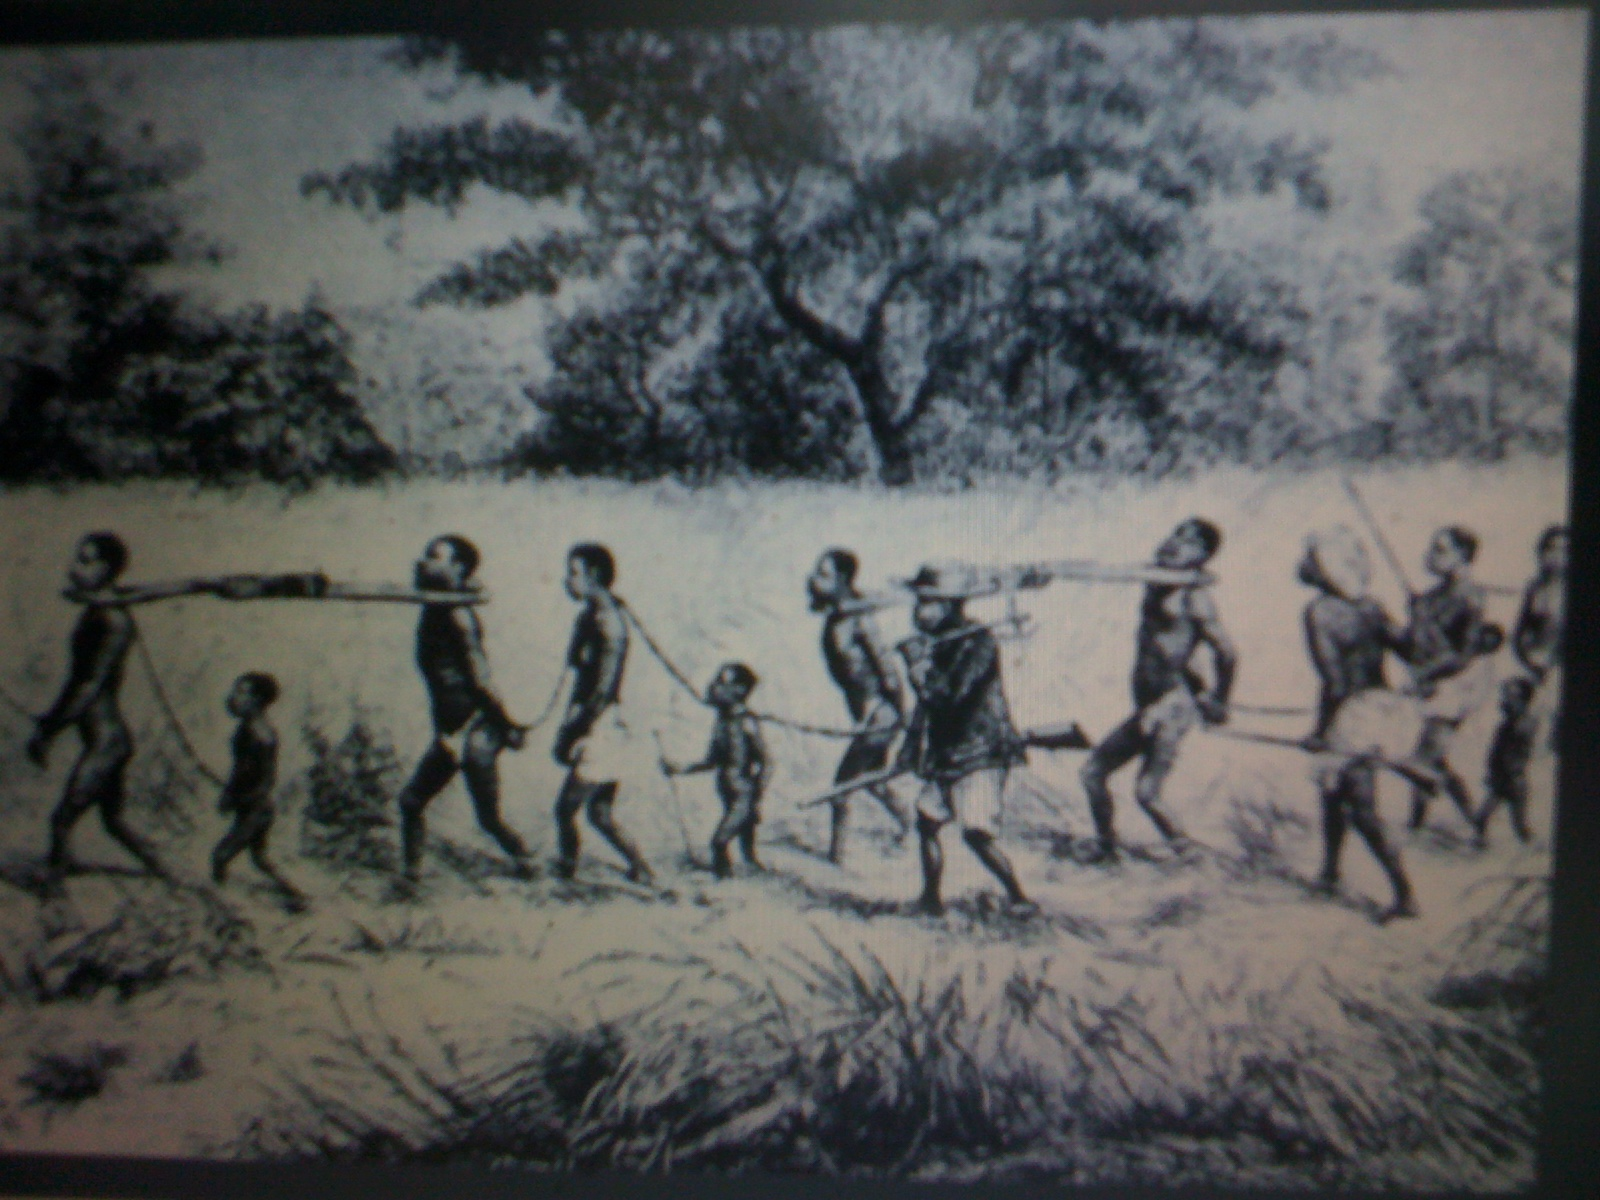 history ia on slavery World history research papers topics ranging from world wars to an individual country's history, paper masters helps write great college research papers in world history.